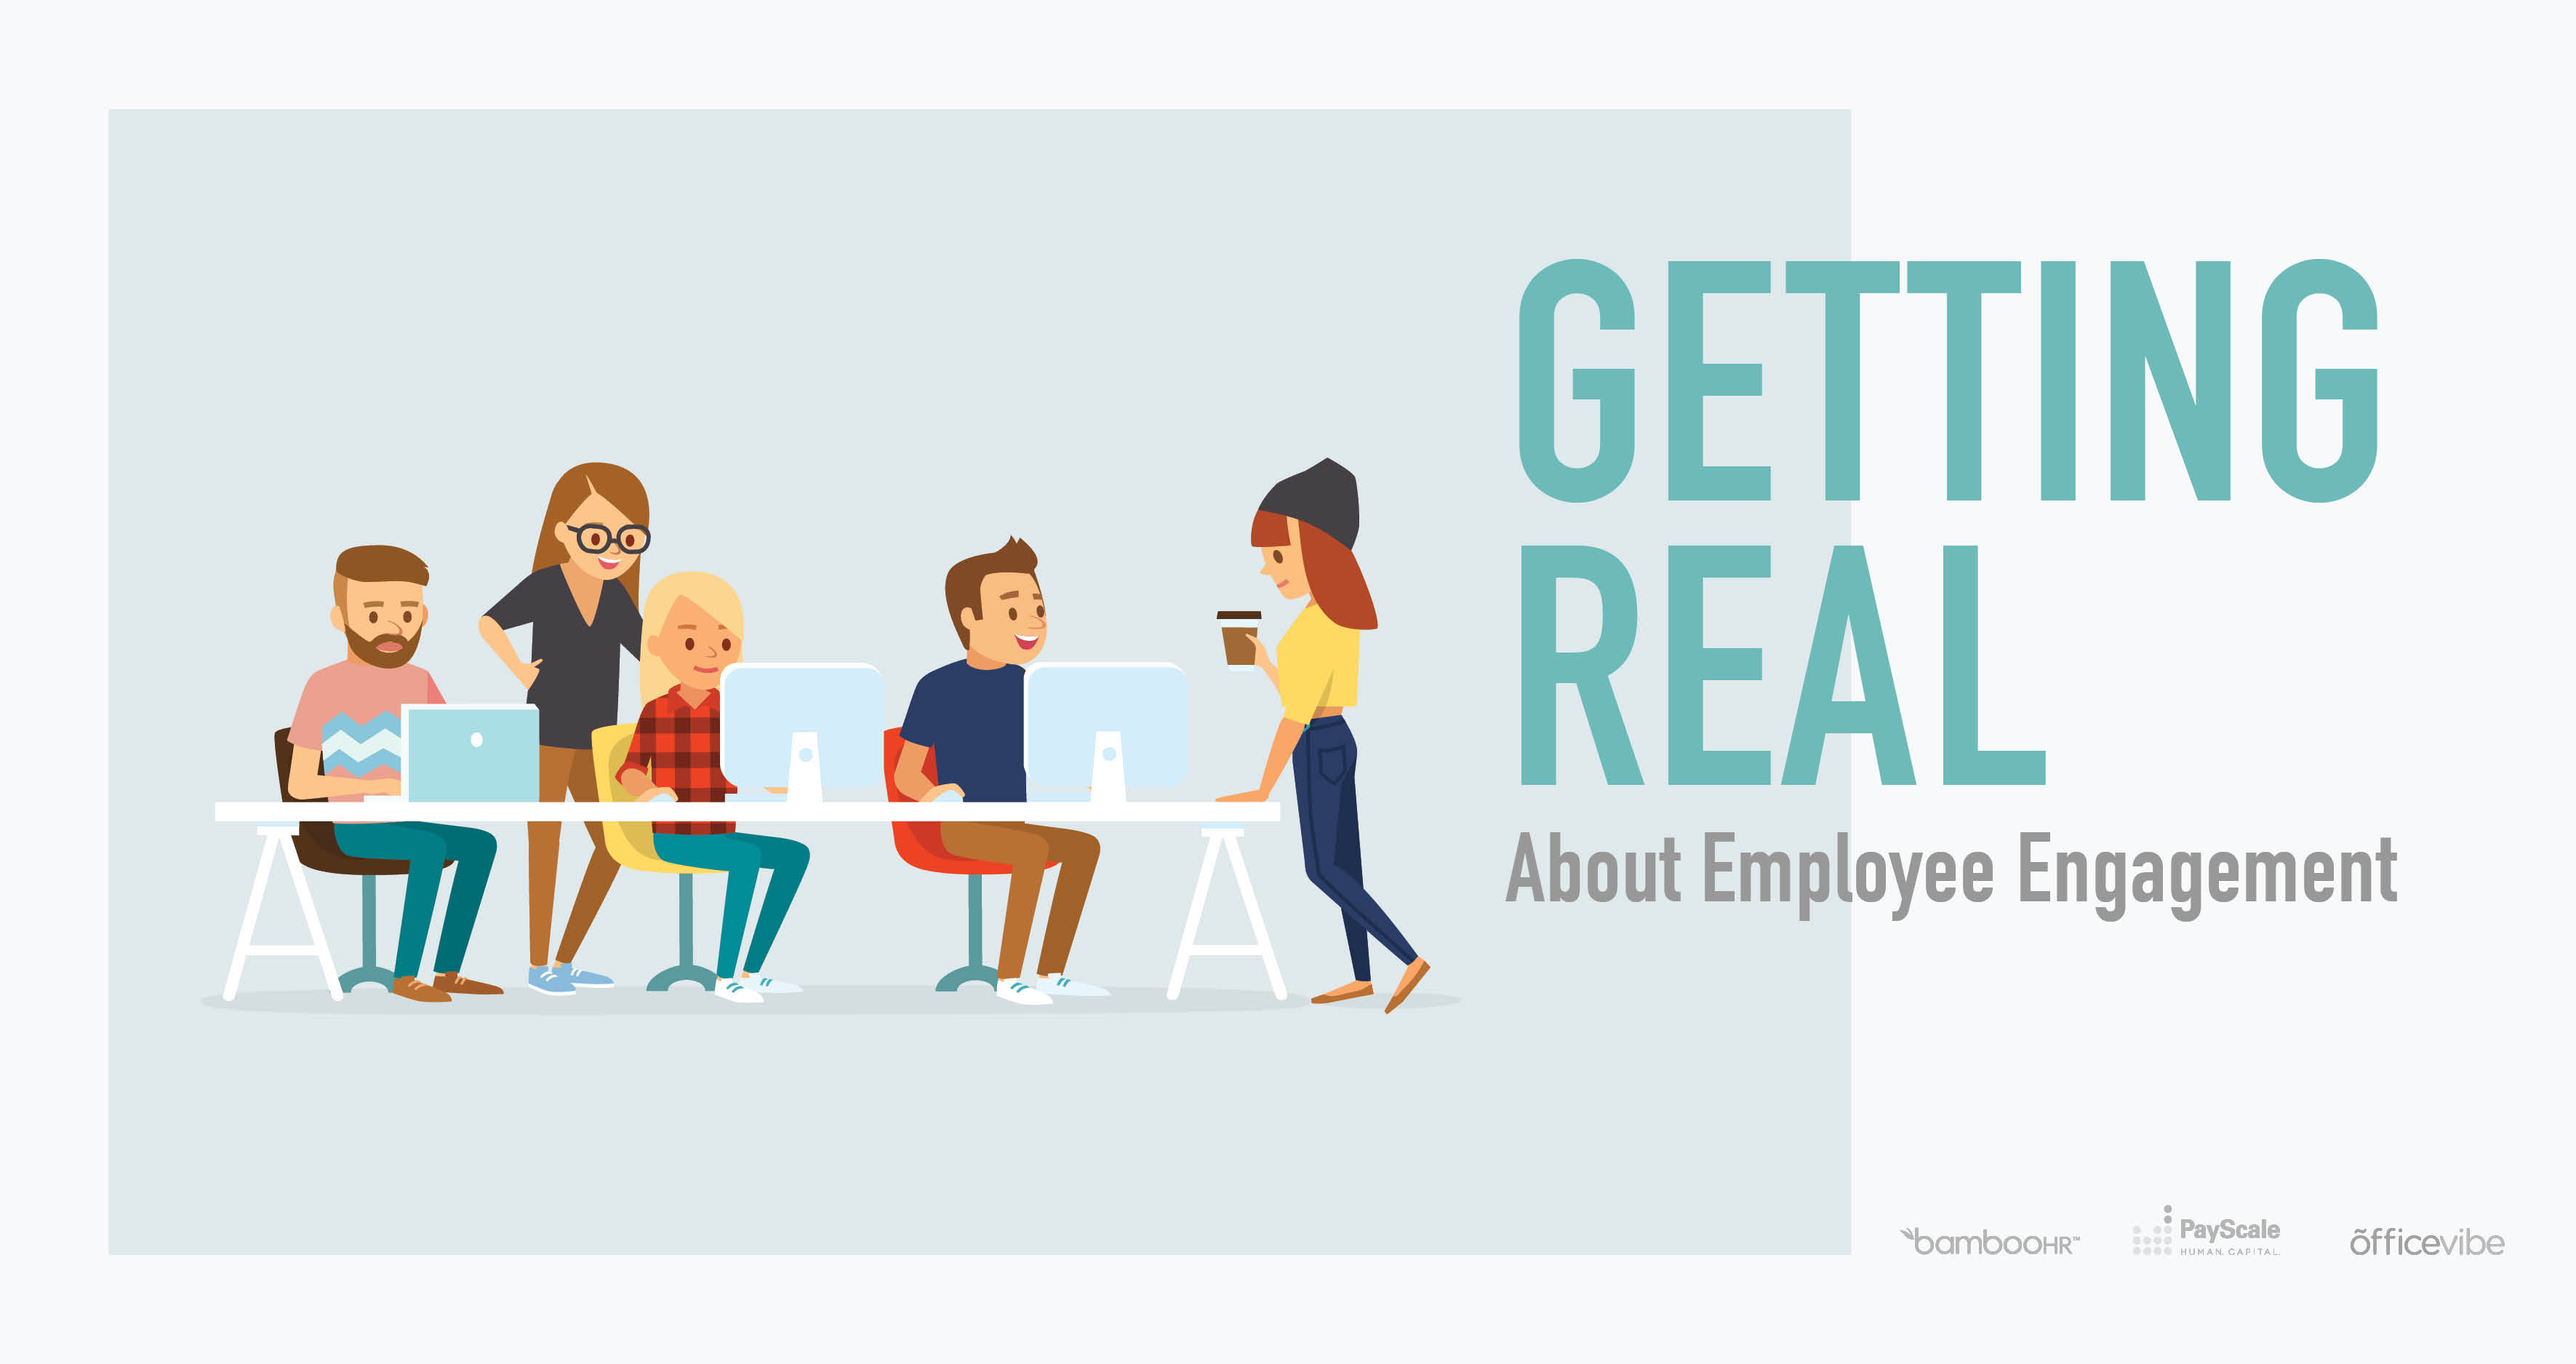 Getting Real About Employee Engagement: How to Get Started